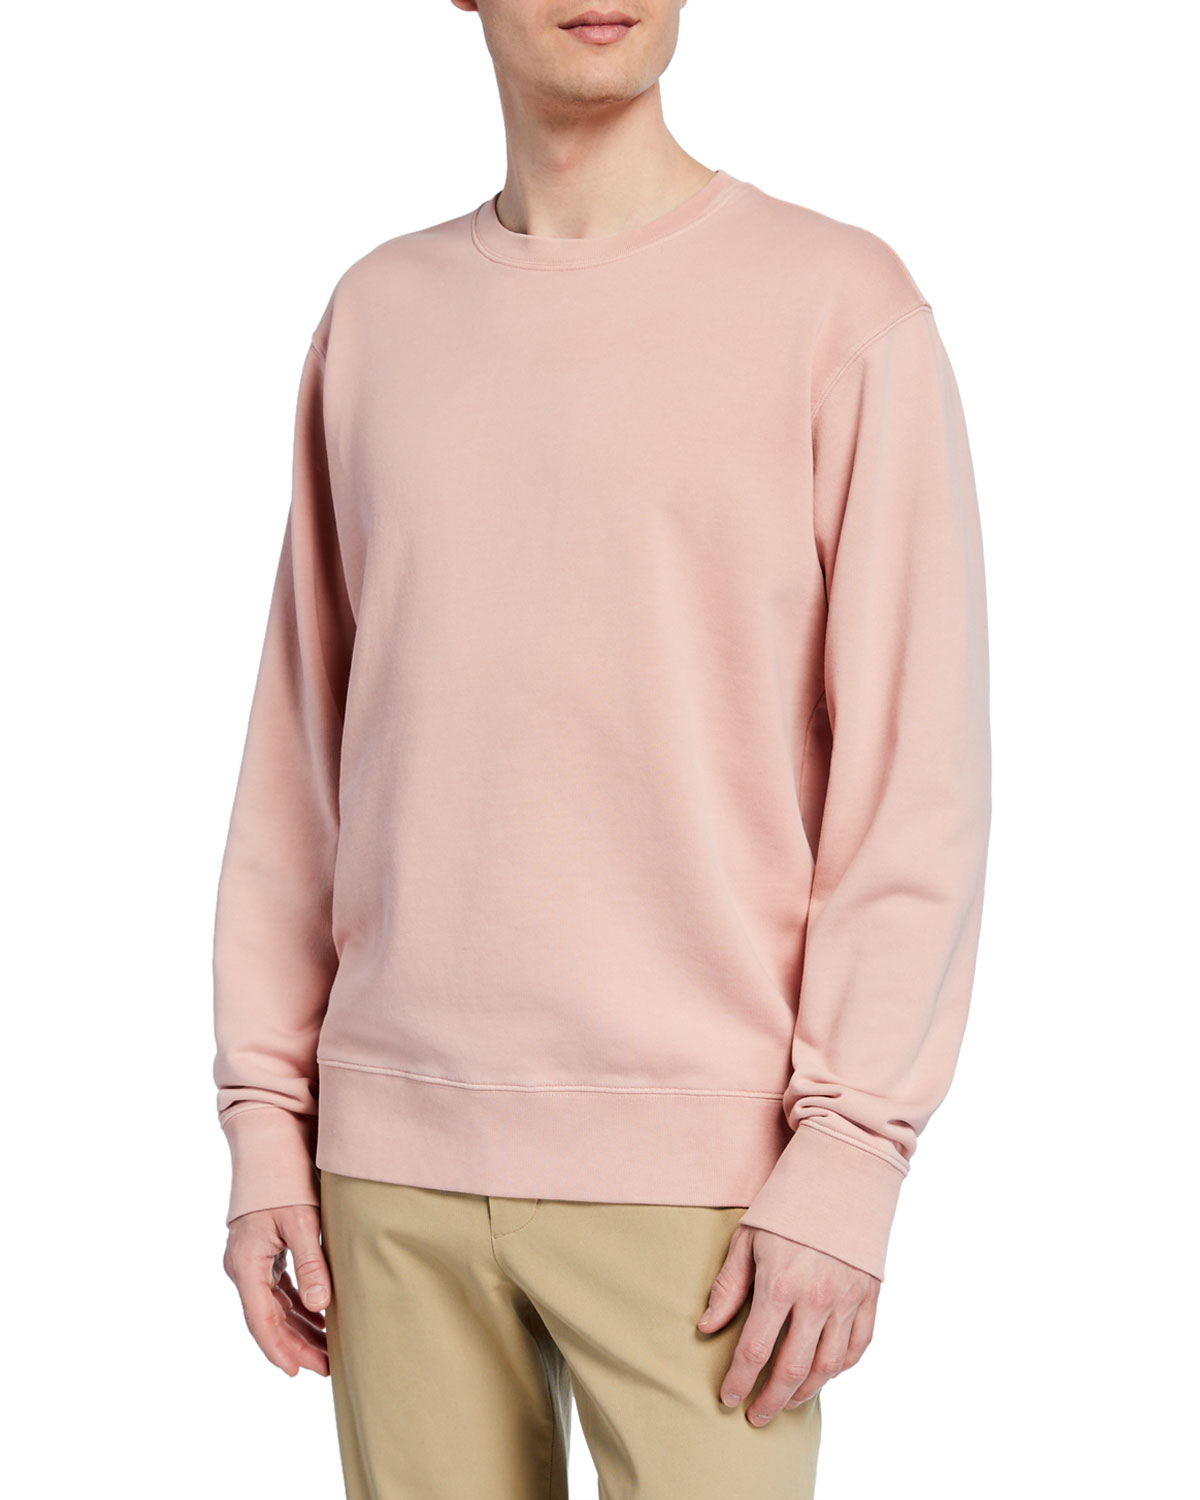 Men's Crewneck Long Sleeve Cotton Sweatshirt by Vince